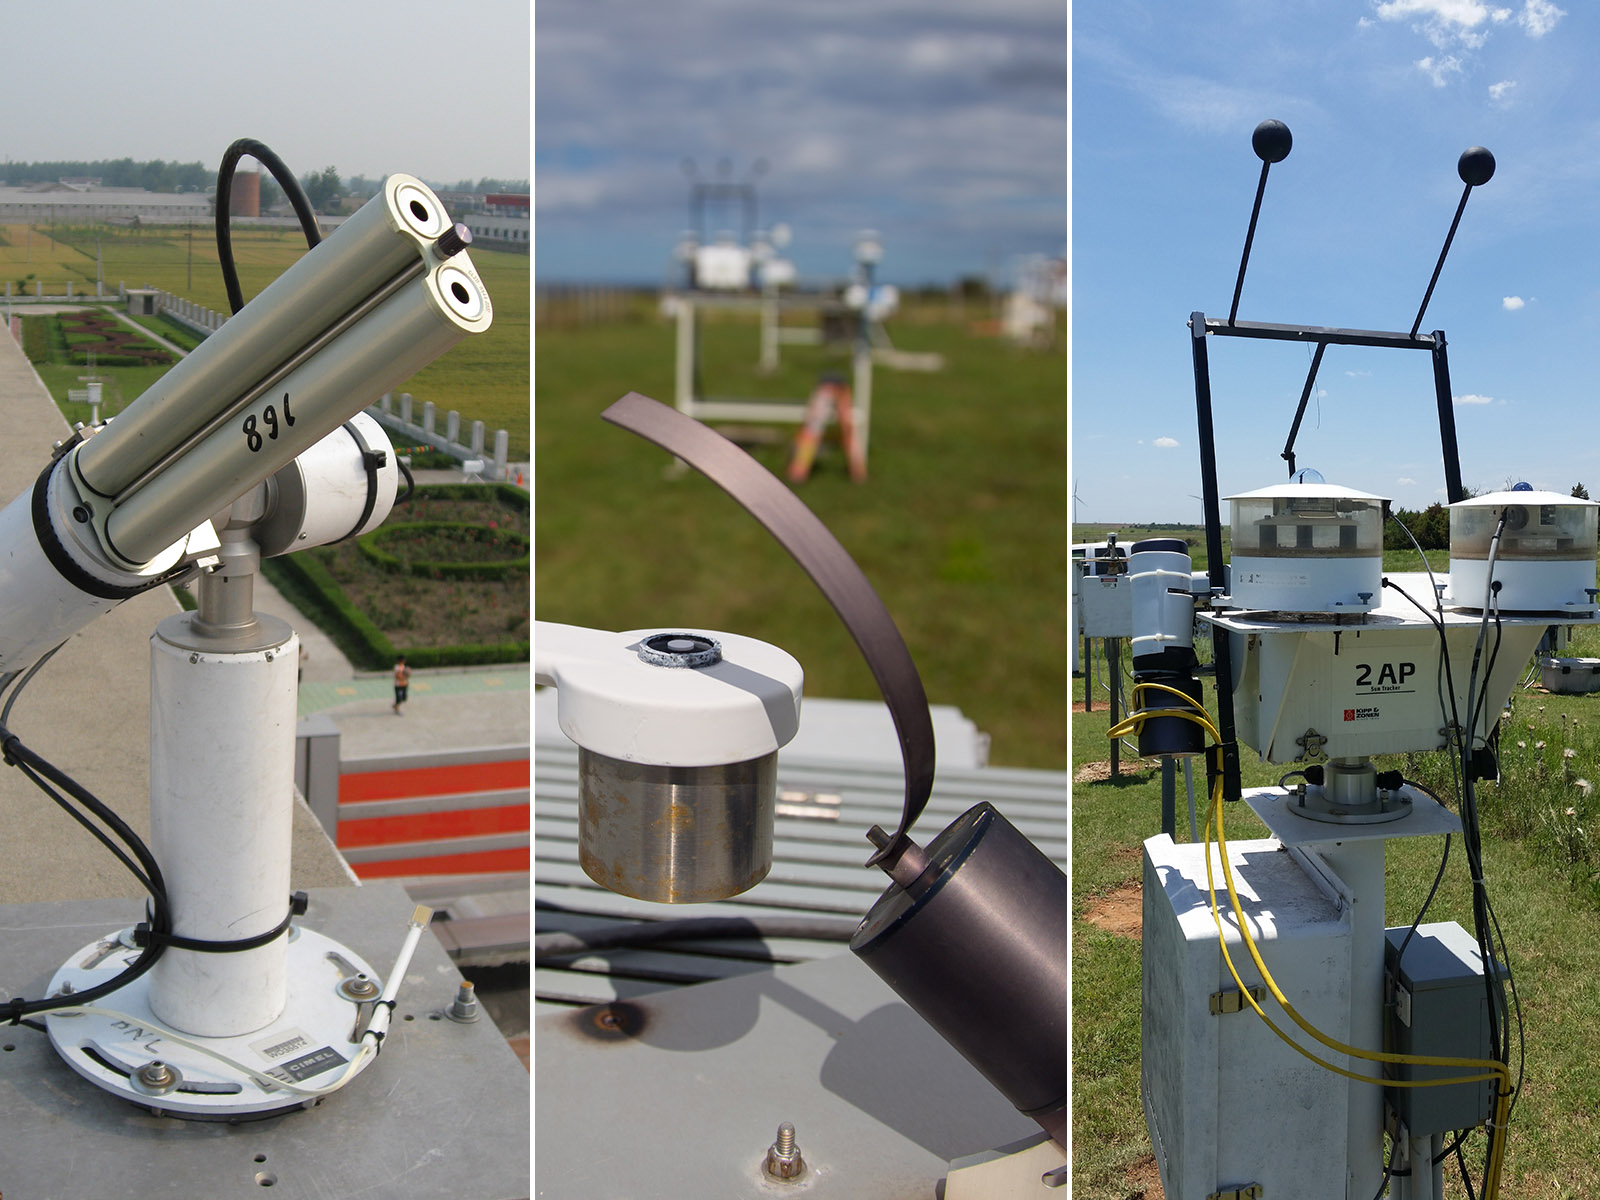 Cimel sunphotometer (left), multifilter rotating shadowband radiometer (middle), and normal incidence multifilter radiometer (right)